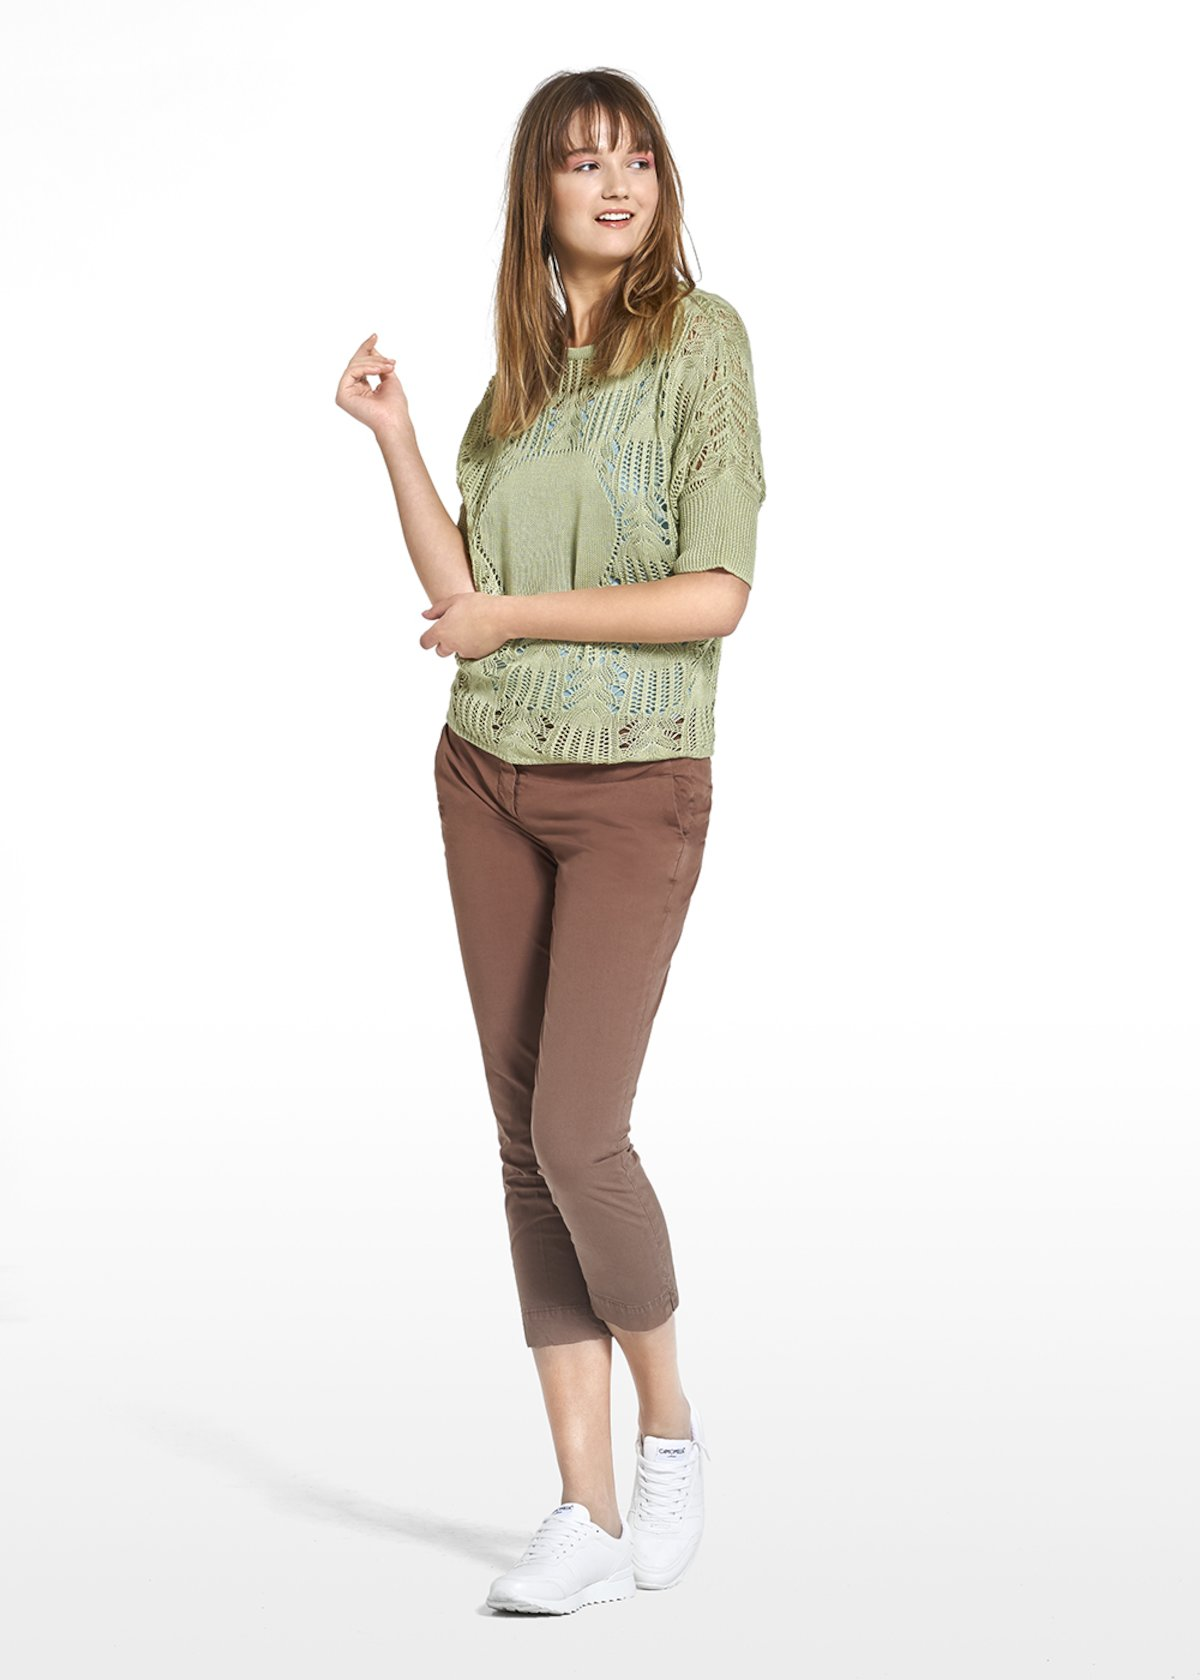 Marty jersey with perforated details with short sleeves - Avocado - Woman - Category image